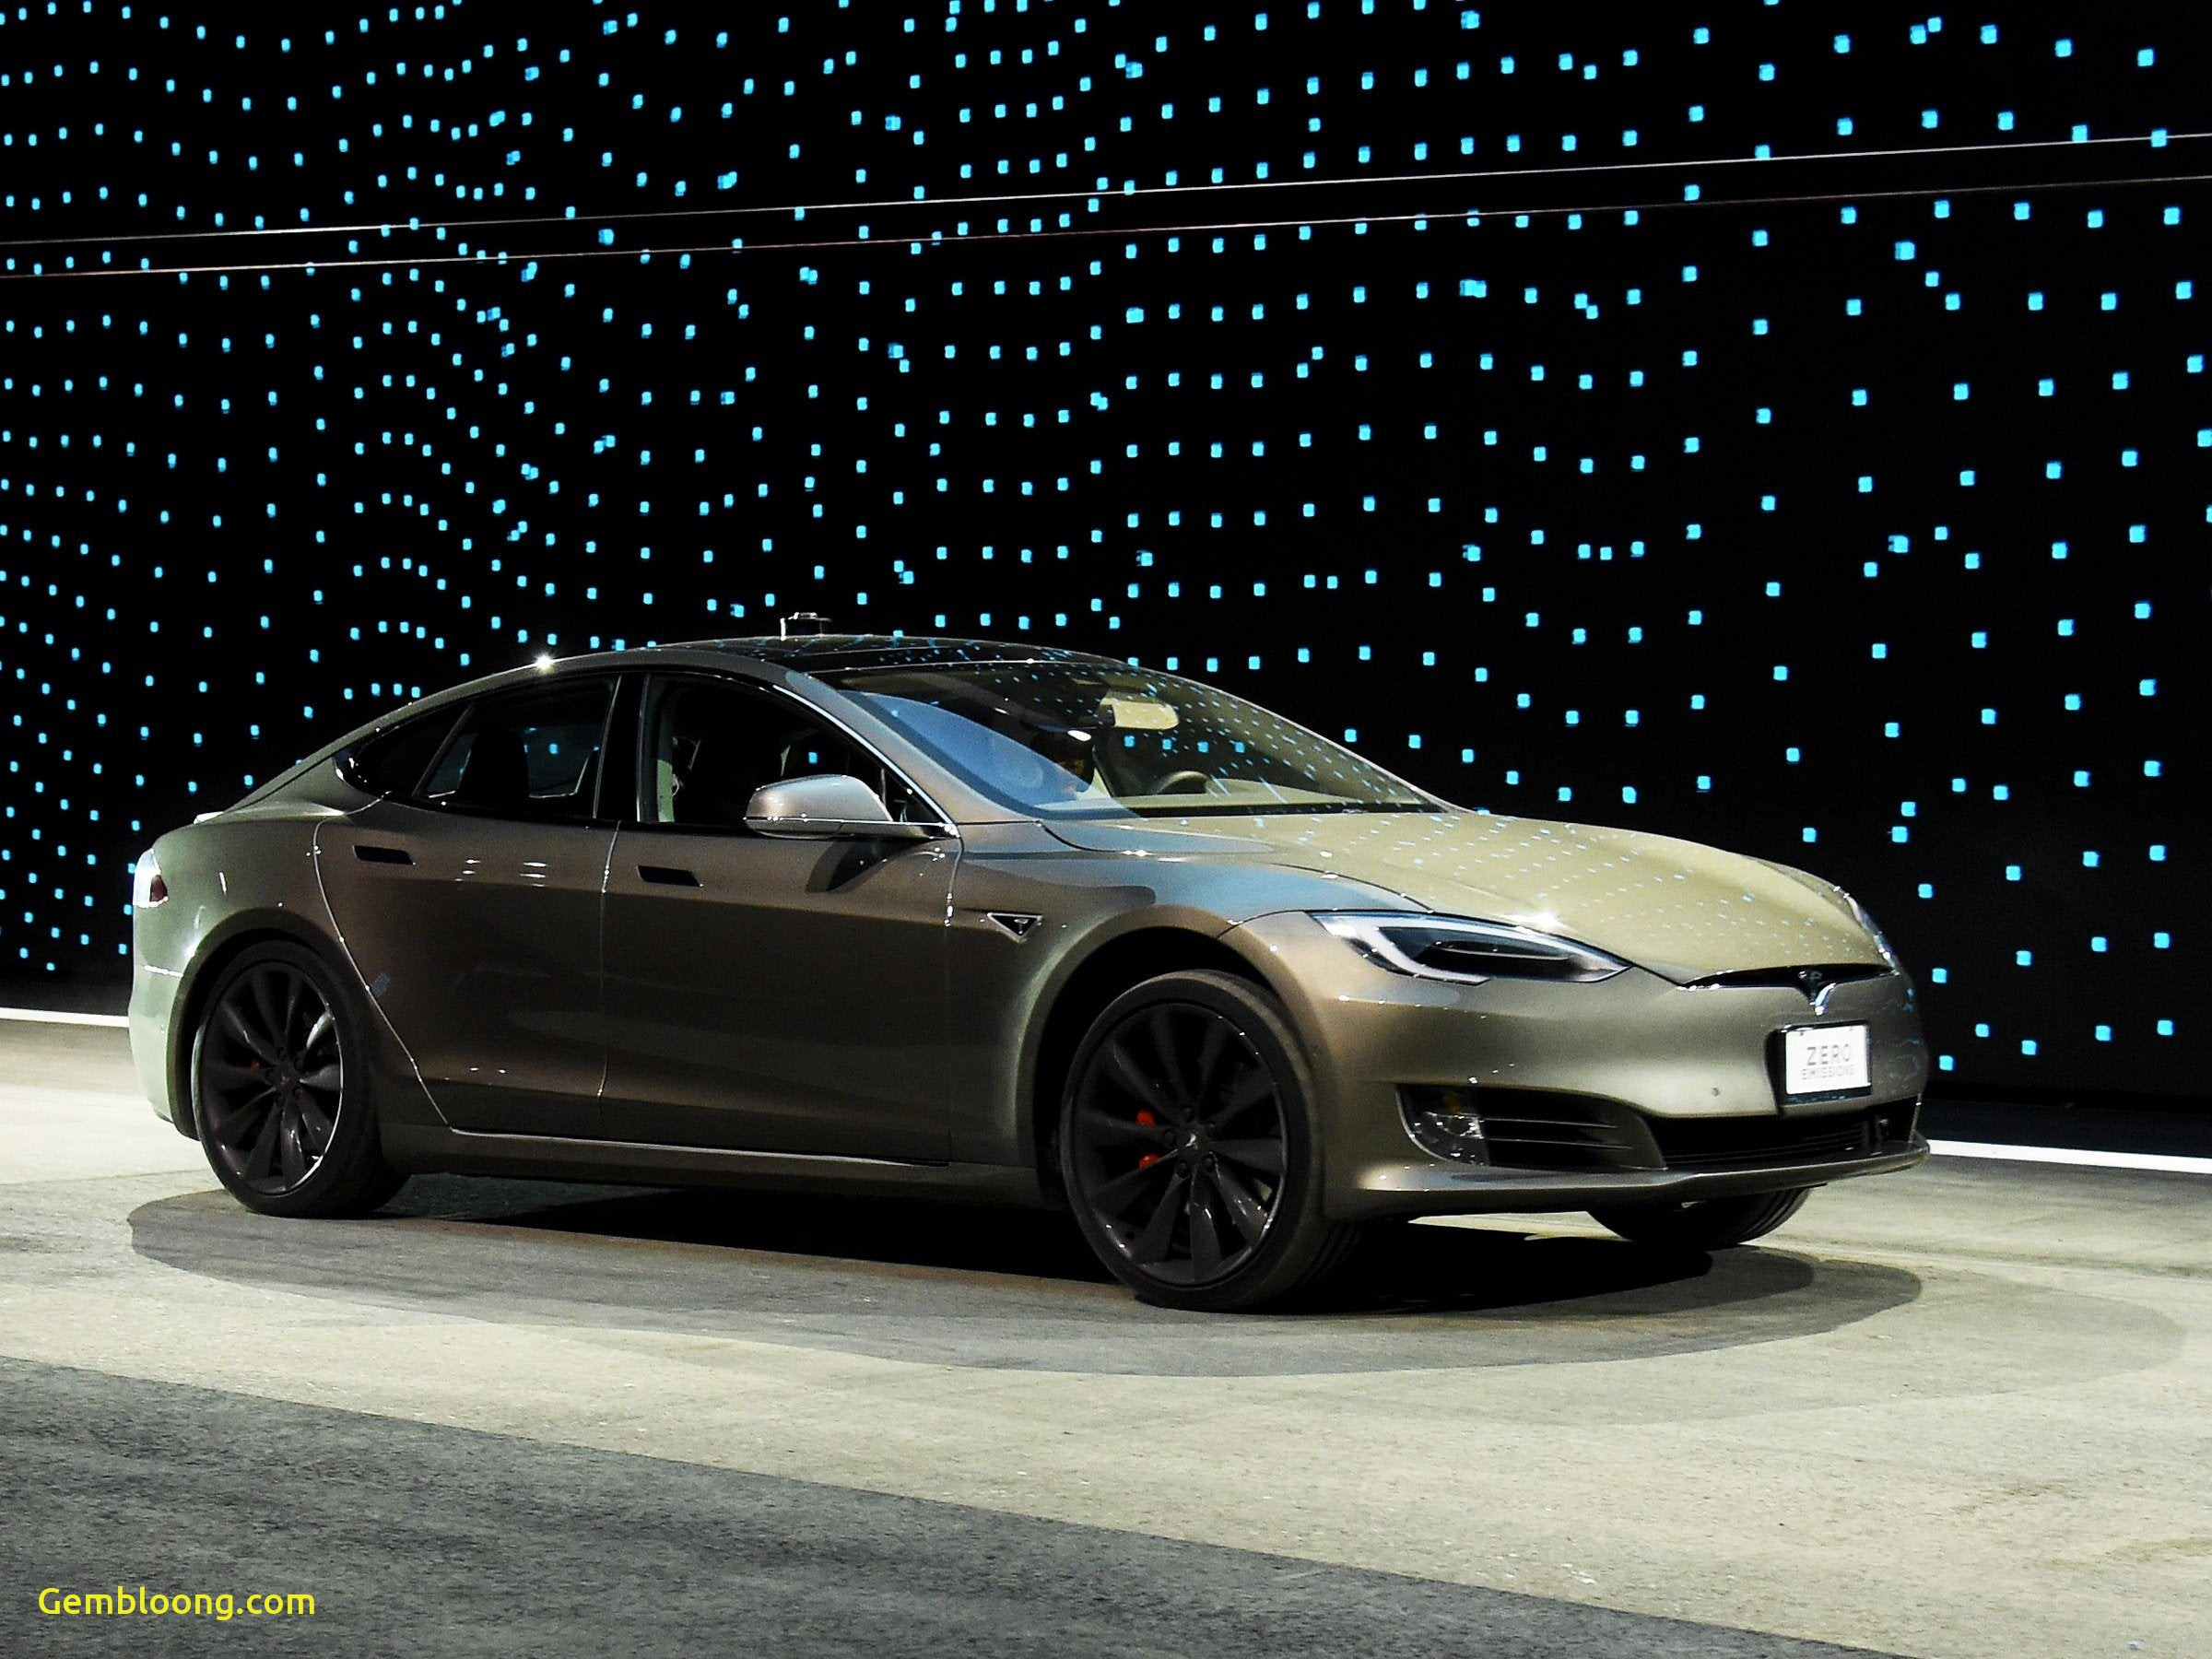 2017 Tesla Model S New Hackers Can Steal A Tesla Model S In Seconds by Cloning Its